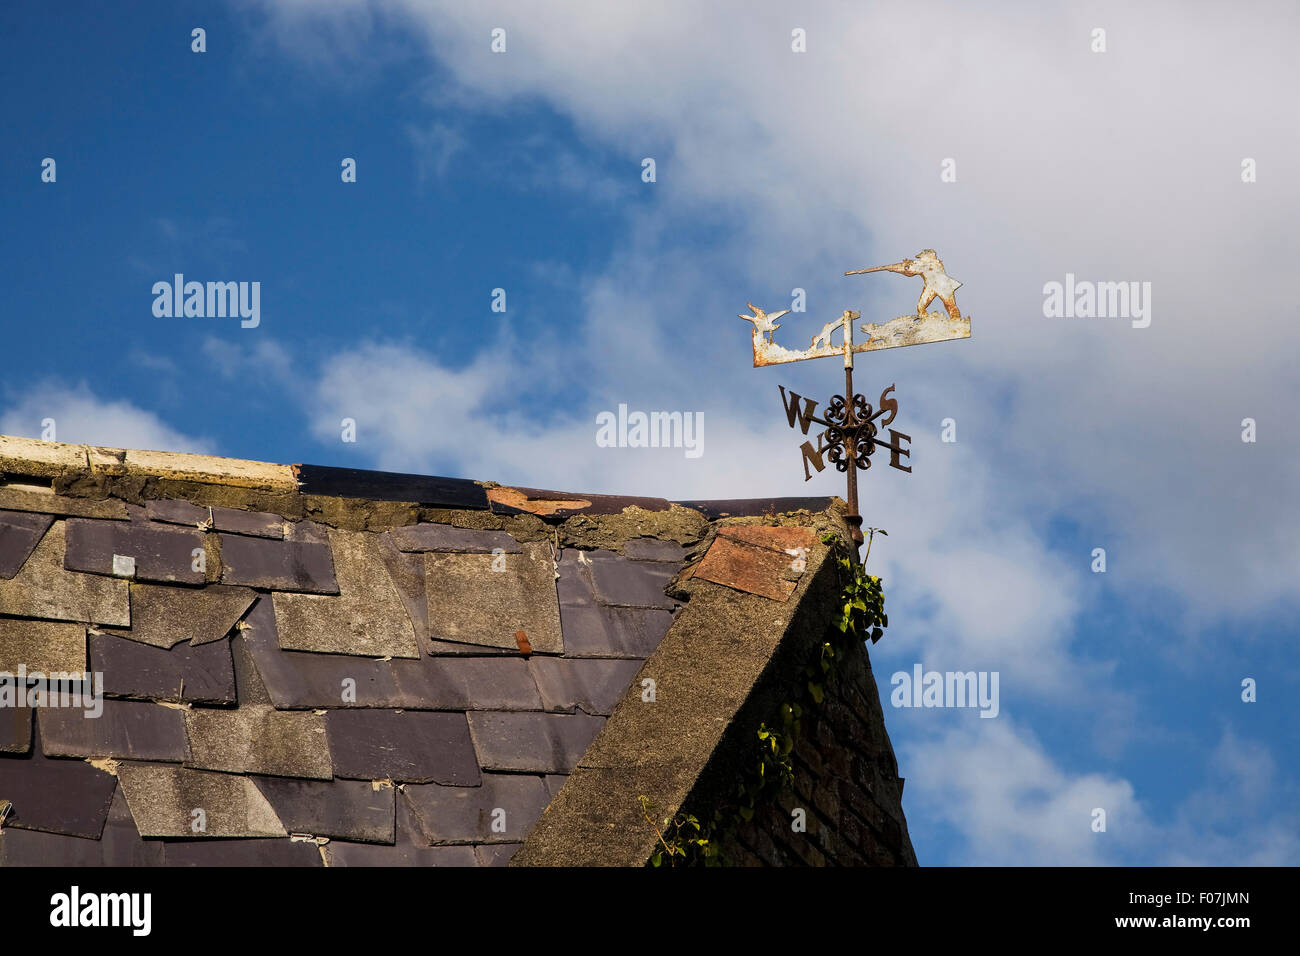 Ornate Weather Vane Depicting a Hunting Scene, Near Newross, County Wexford, Ireland - Stock Image